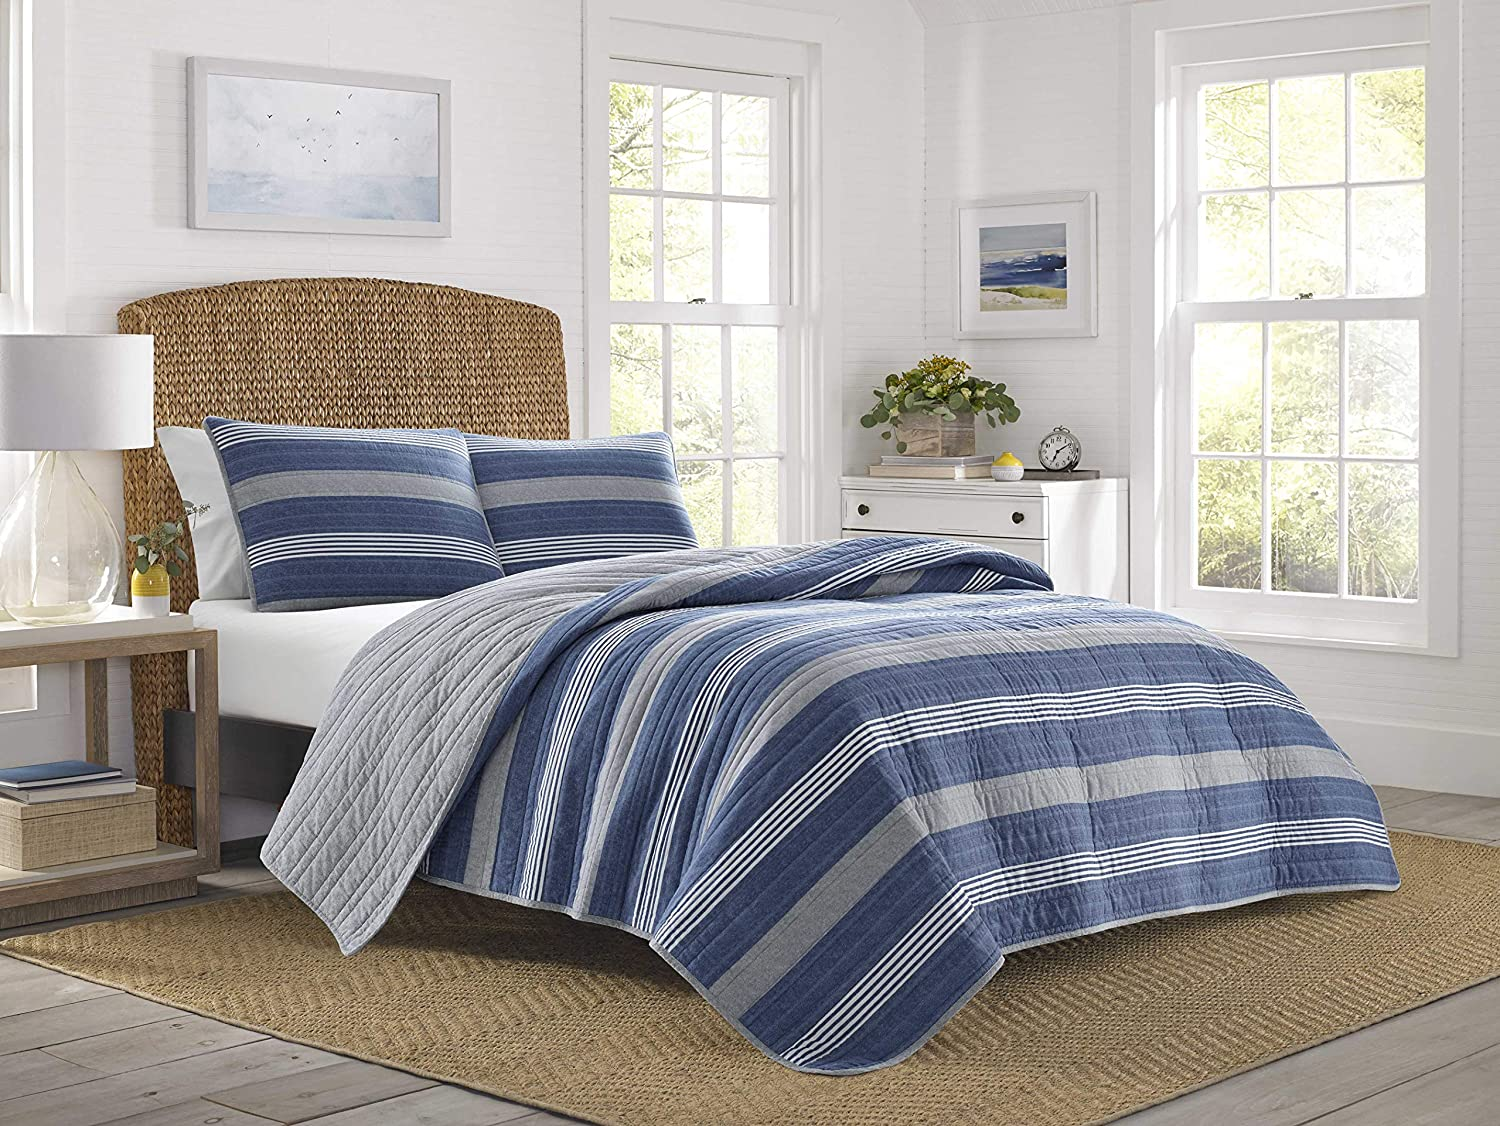 Nautica | Saltmarsh Collection | 100% Cotton Light-Weight Reversible Quilt Bedspread Matching Shams, 3-Piece Bedding Set, Pre-Washed for Softness, Full/Queen, Blue